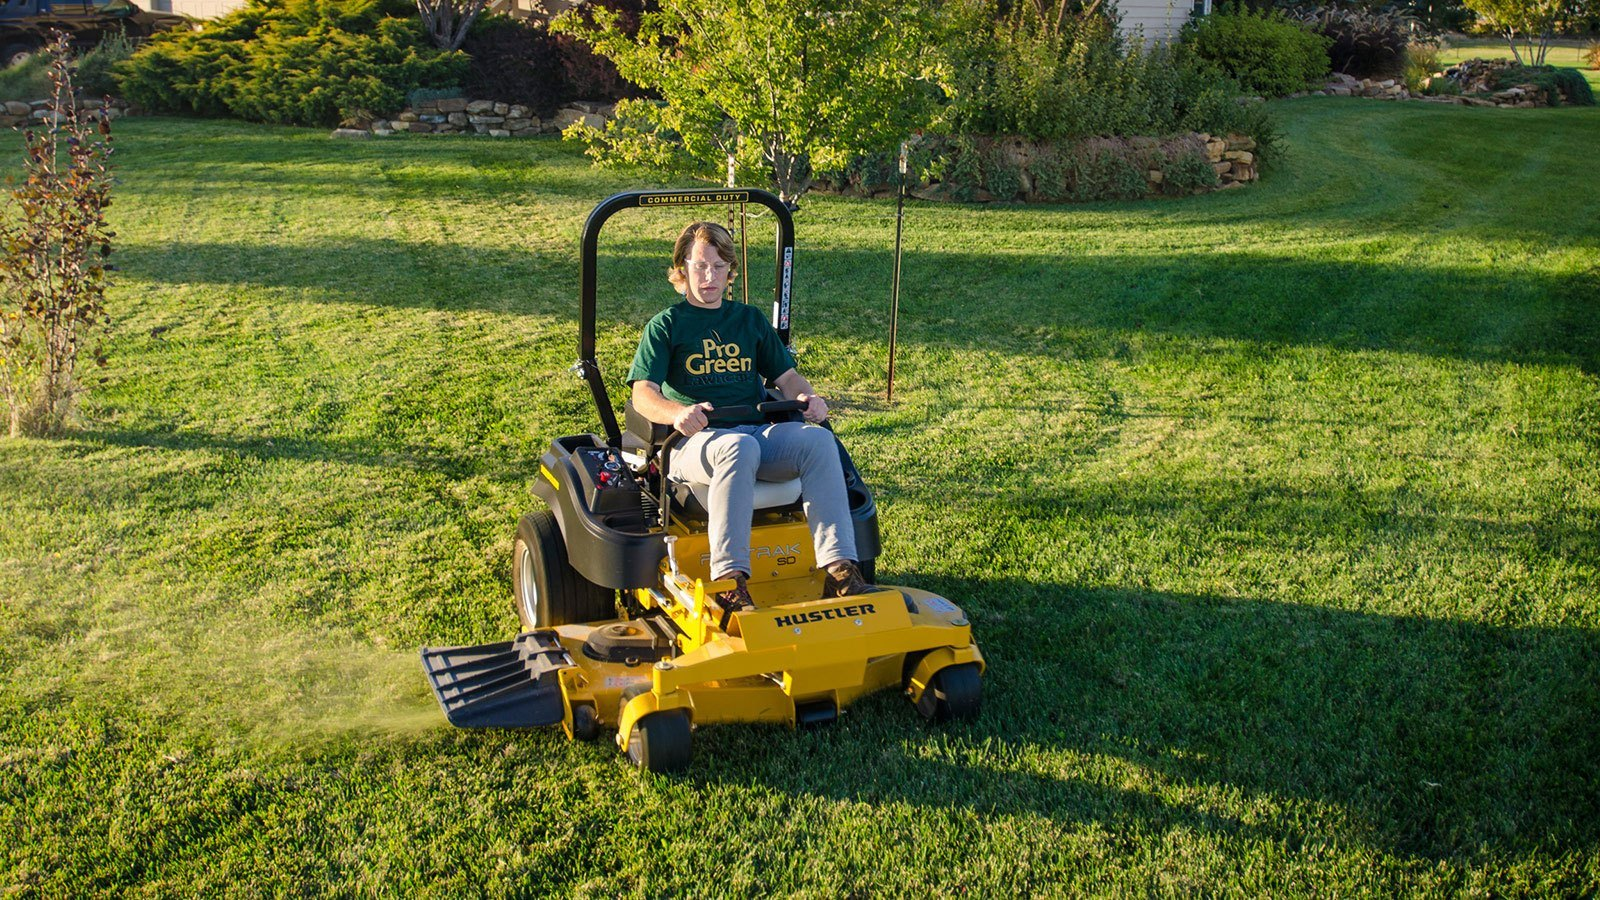 And Riley hustler mower sport price need girl ride